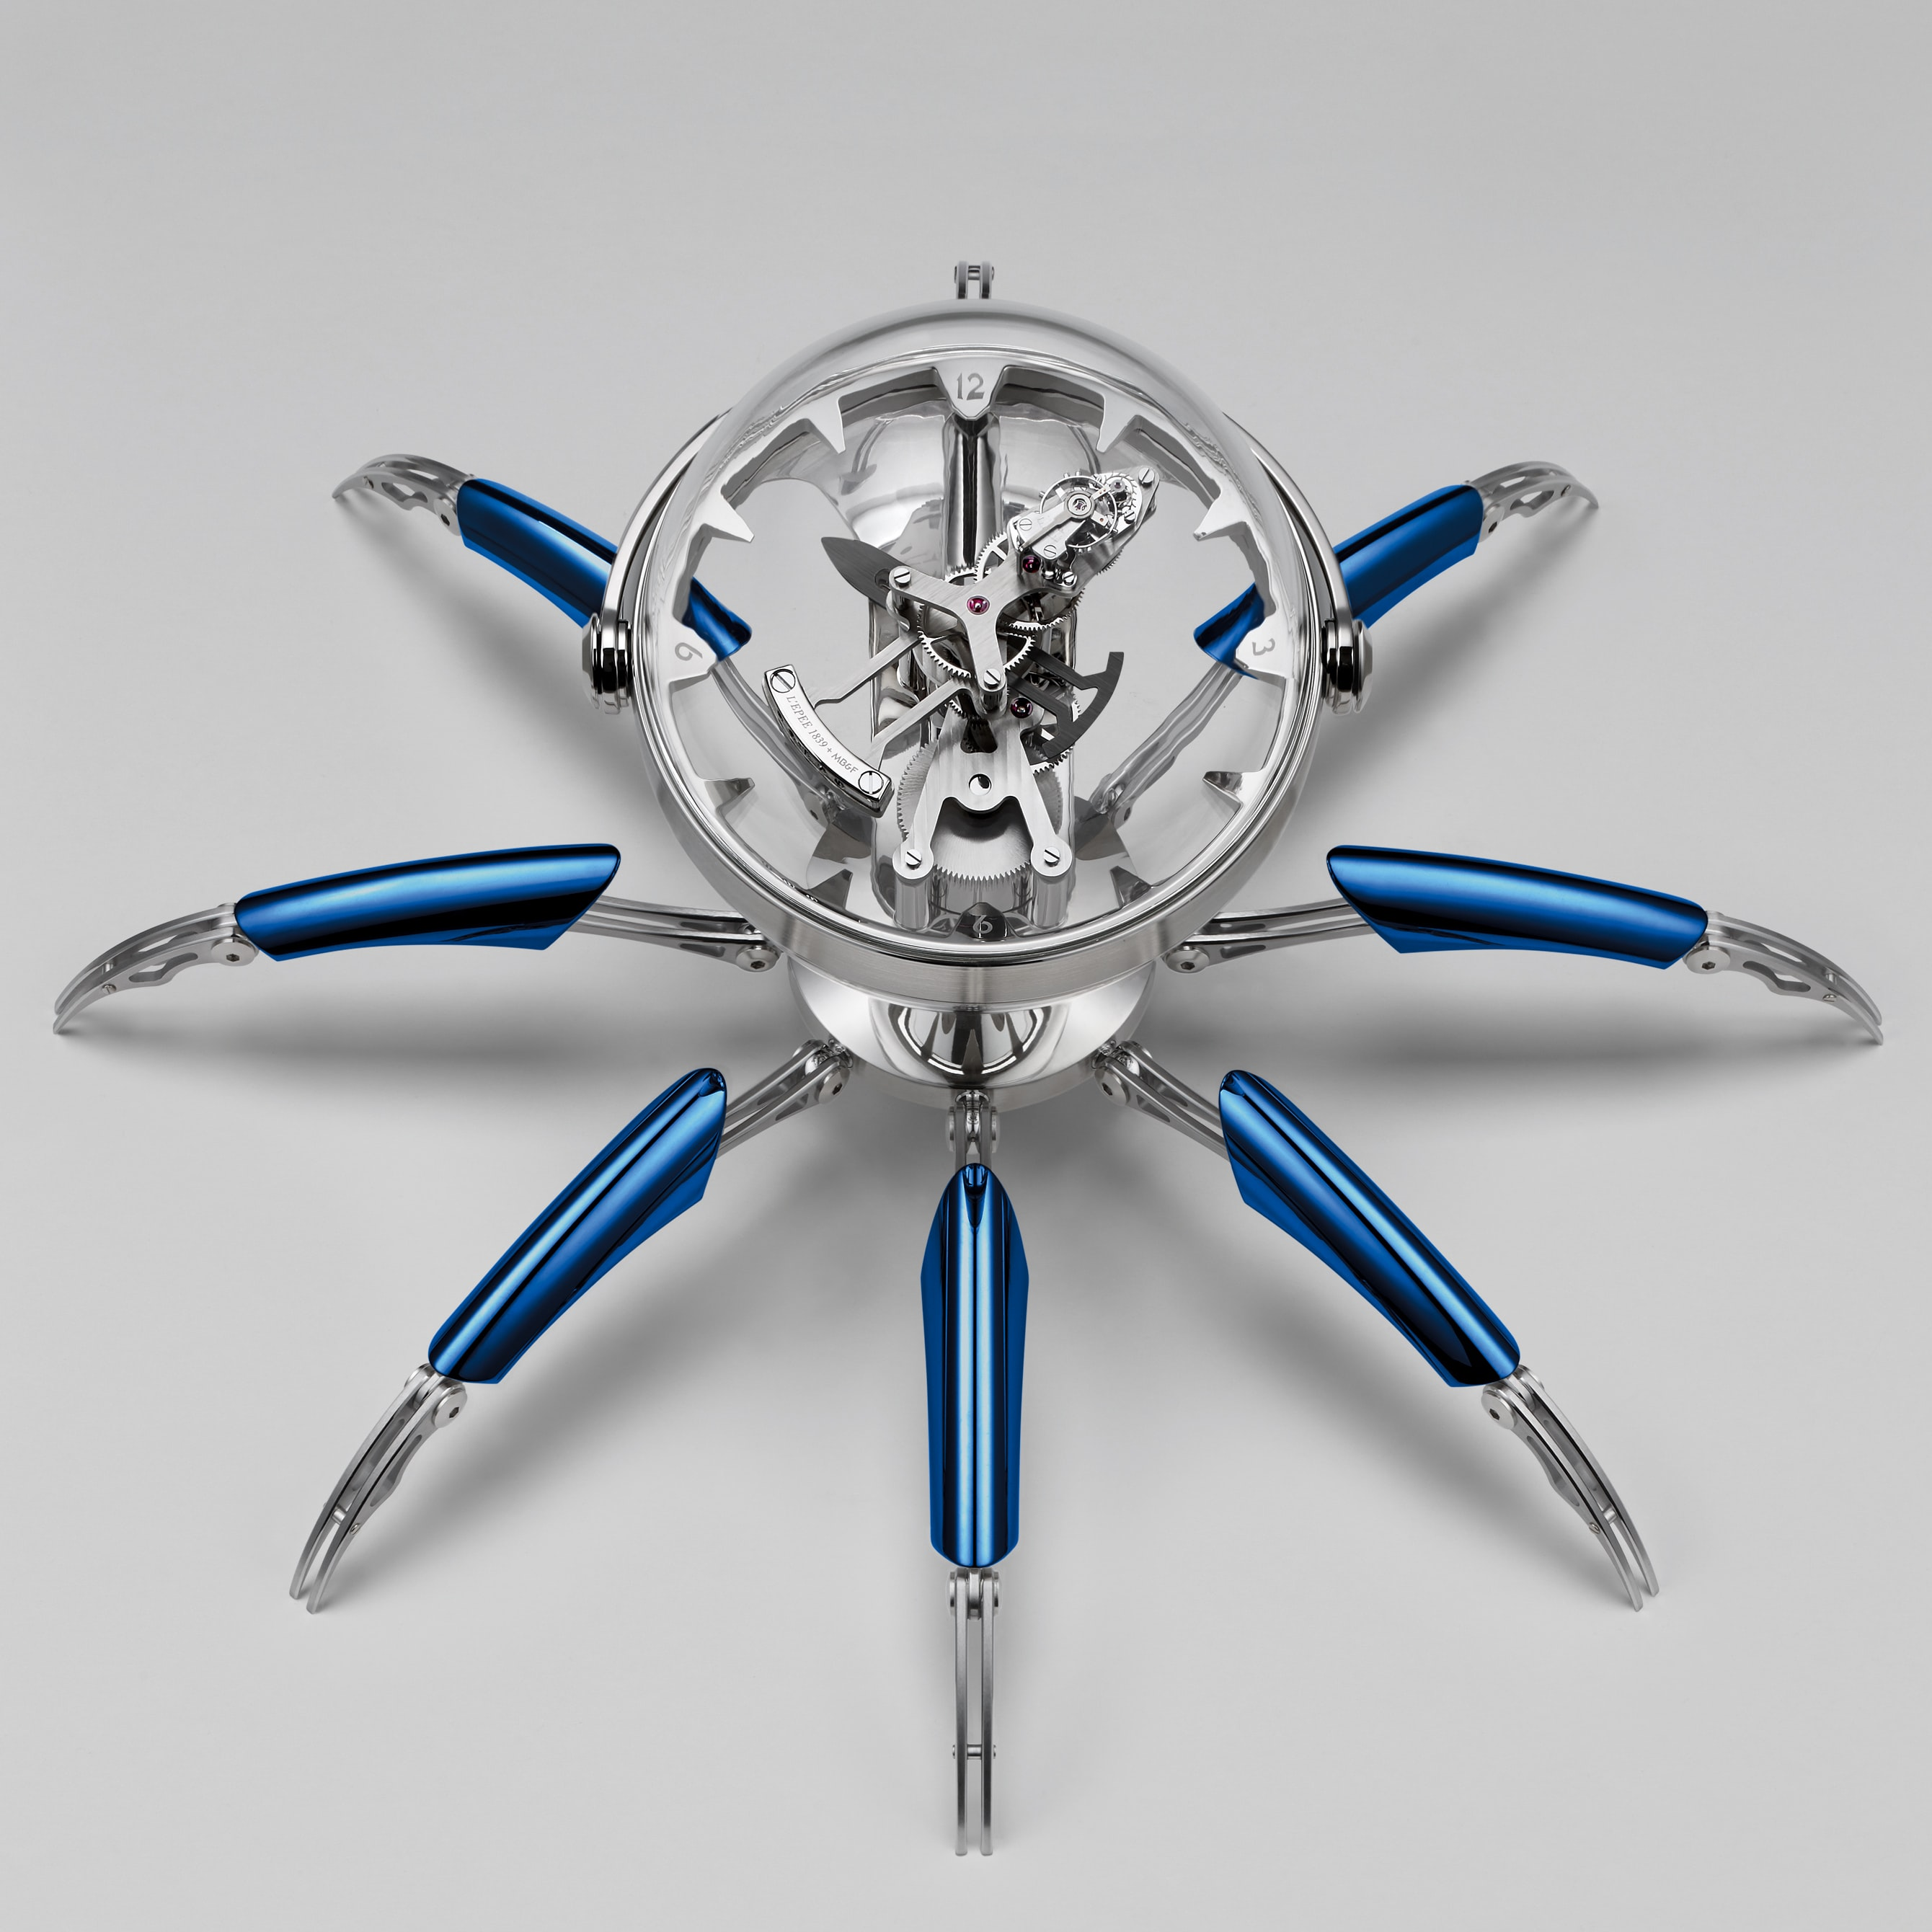 Octopod clock blue PVD version seen from above introducing: the mb&f and l'epe 1839 octopod clock Introducing: The MB&F And L'Epe 1839 Octopod Clock Octopod Top Blue HRES CMYK